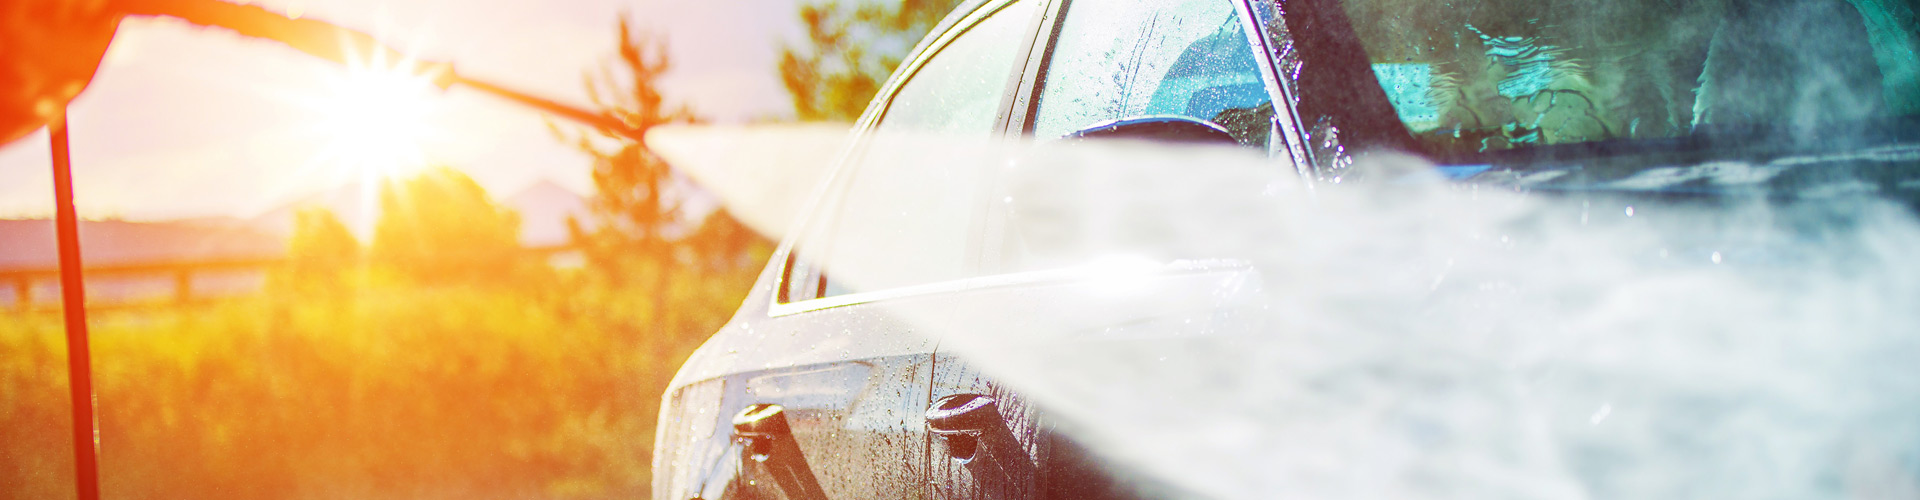 Macneil Car Wash Equipment >> Get a quote to install a car wash at your business.